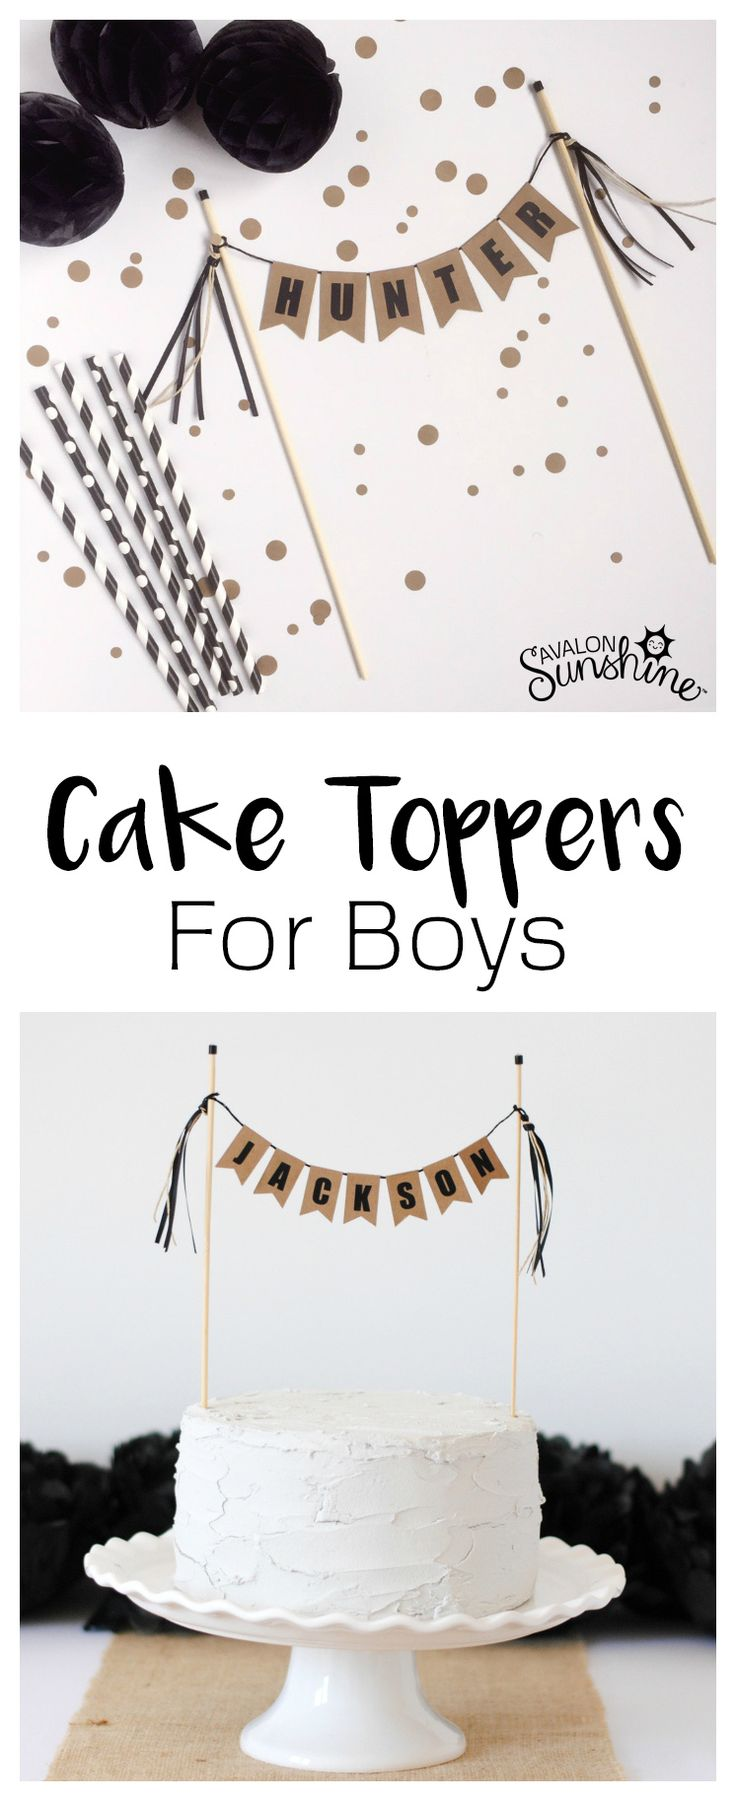 Cake Toppers for Boys can be hard to find. I love this rustic black & kraft topper. I can work for a lumberjack theme and it matches with burlap decor.